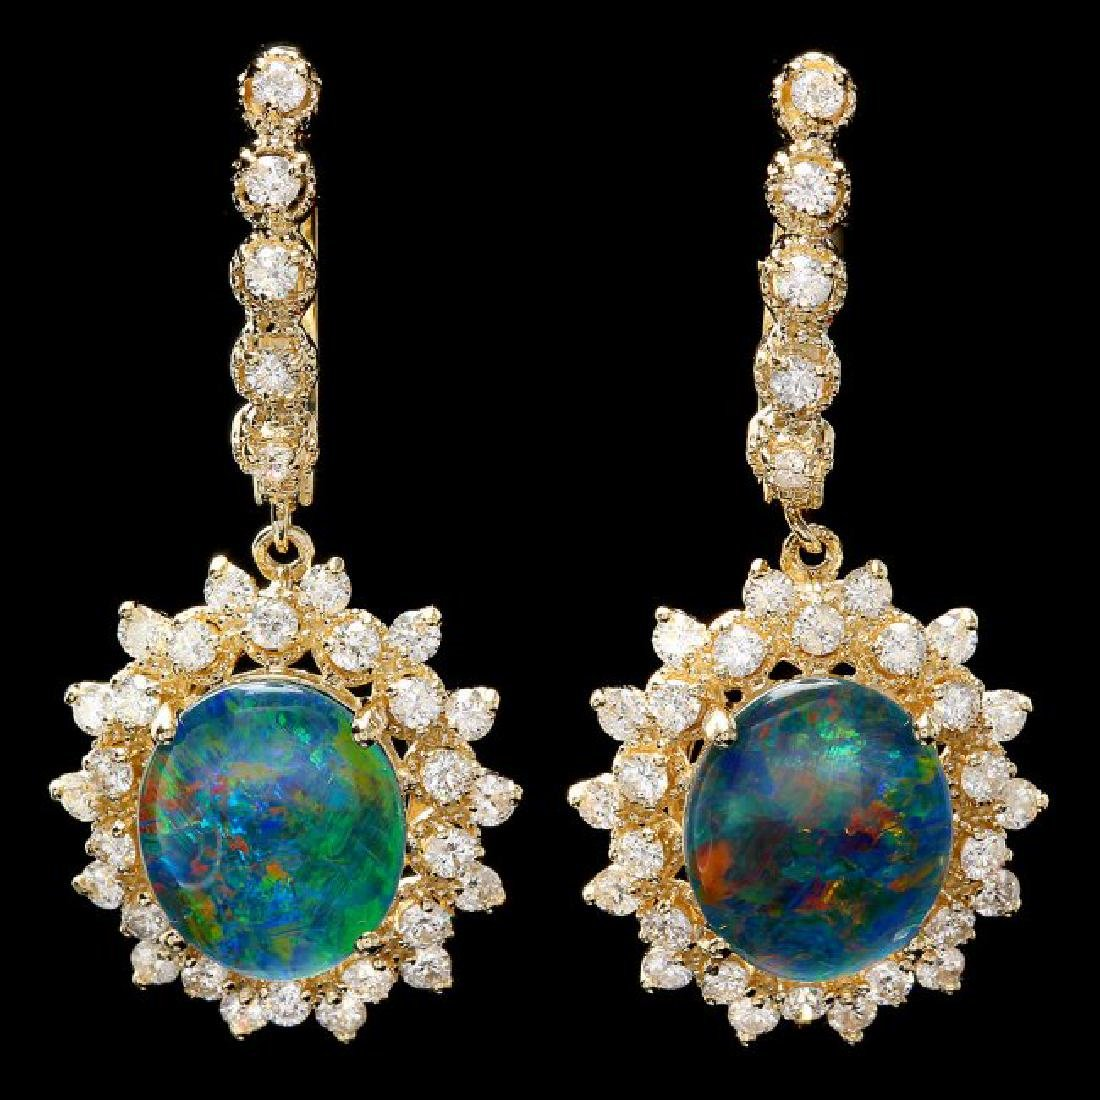 14k Gold 4.50ct Triplet Opal 2ct Diamond Earrings